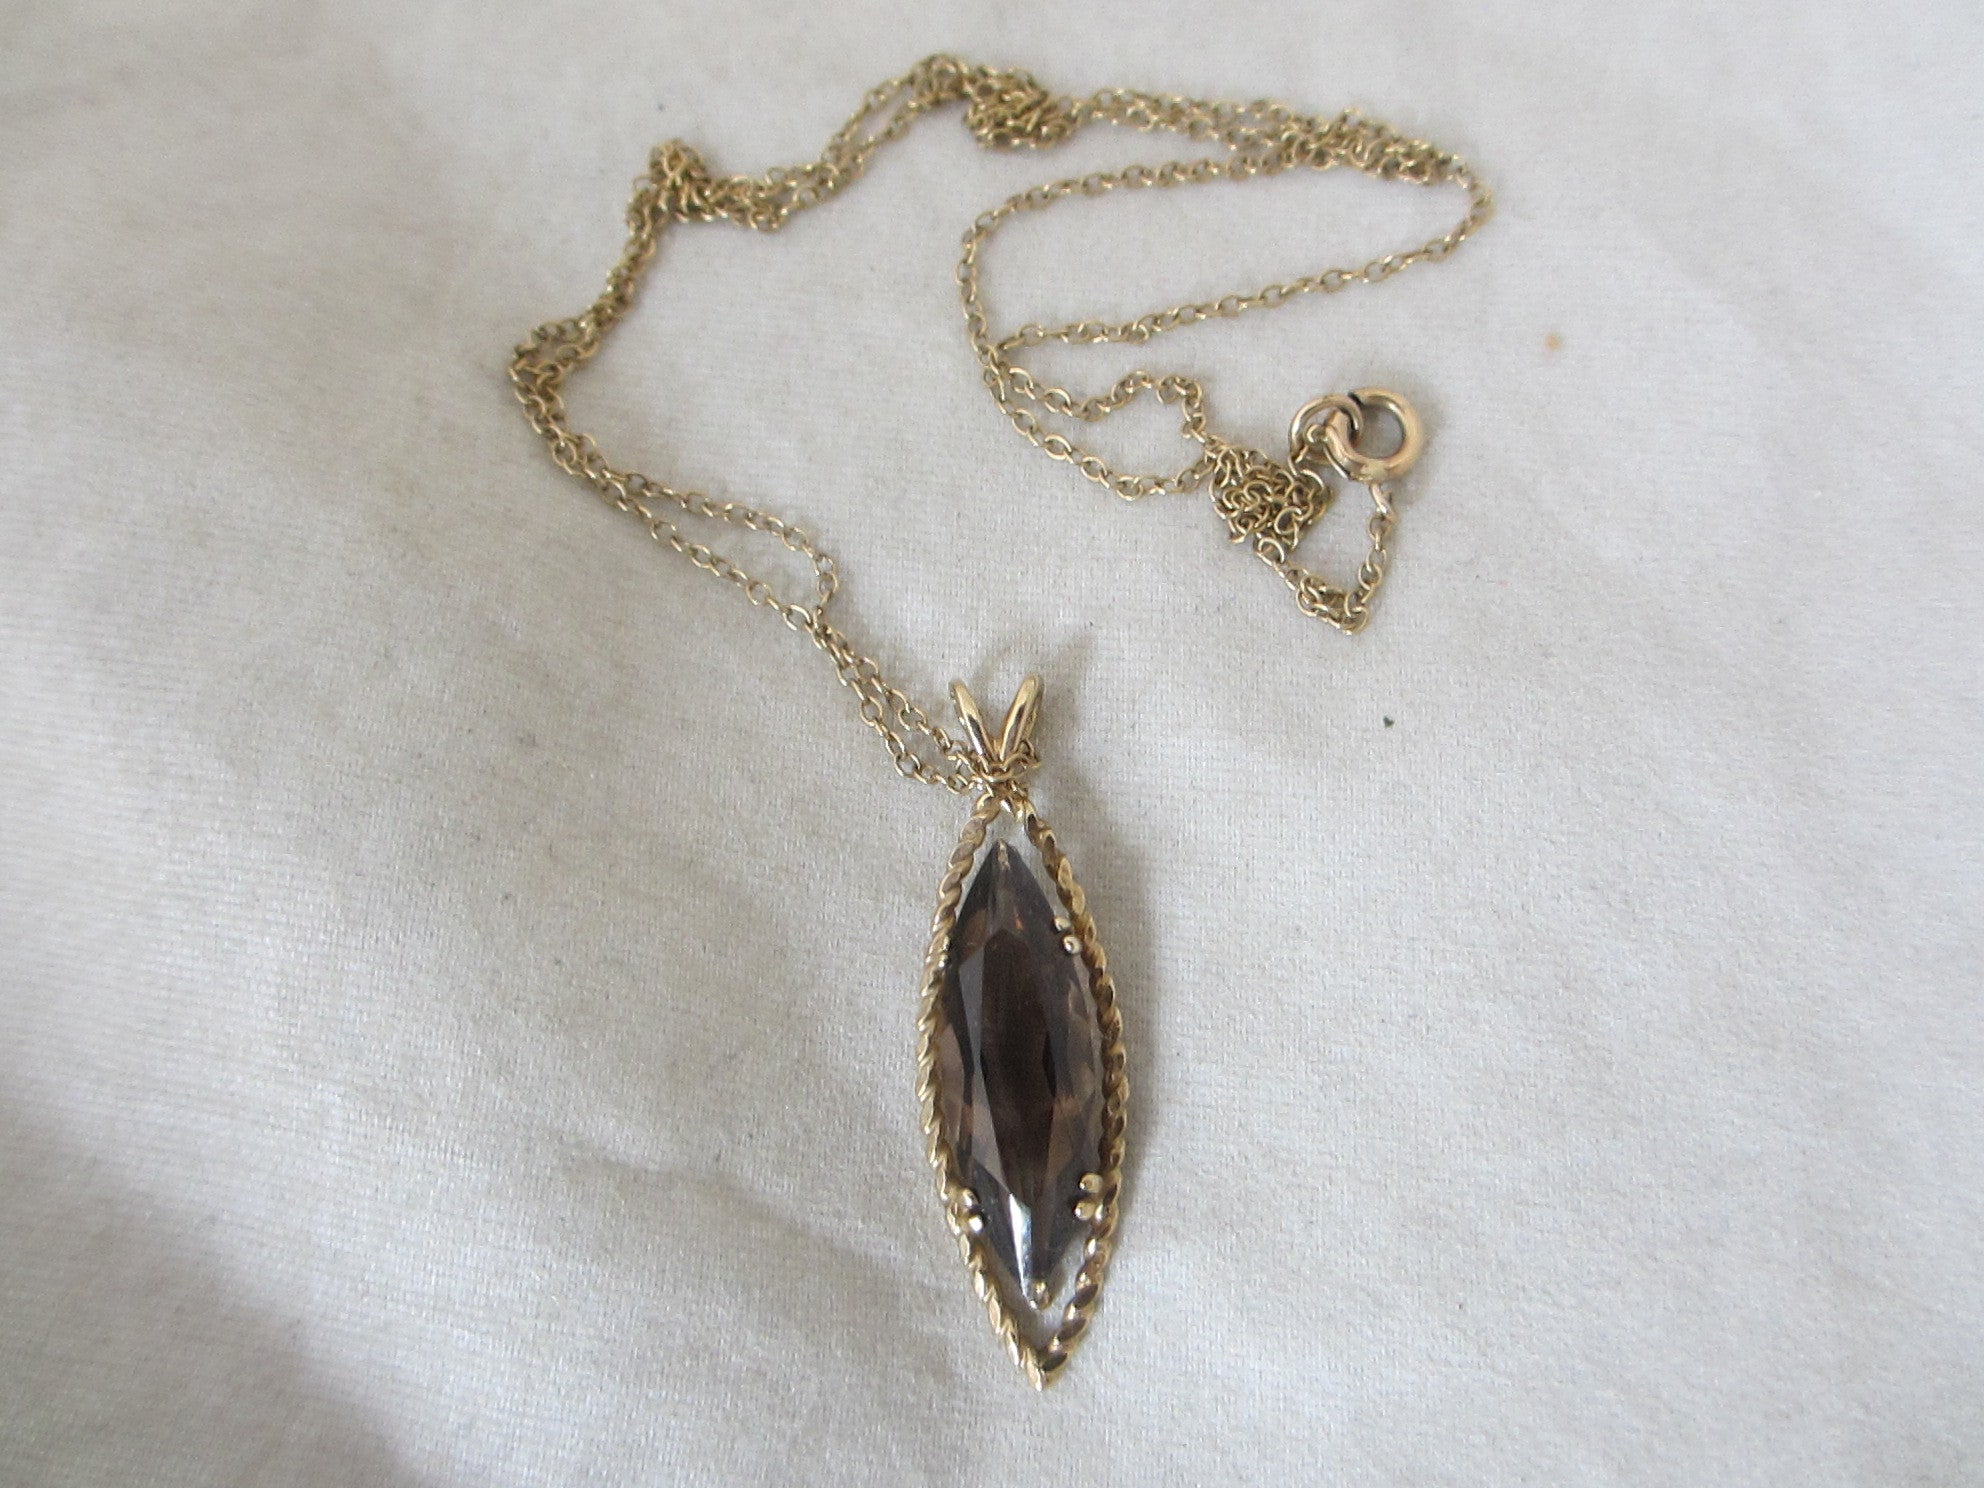 Antique and Vintage Pendants